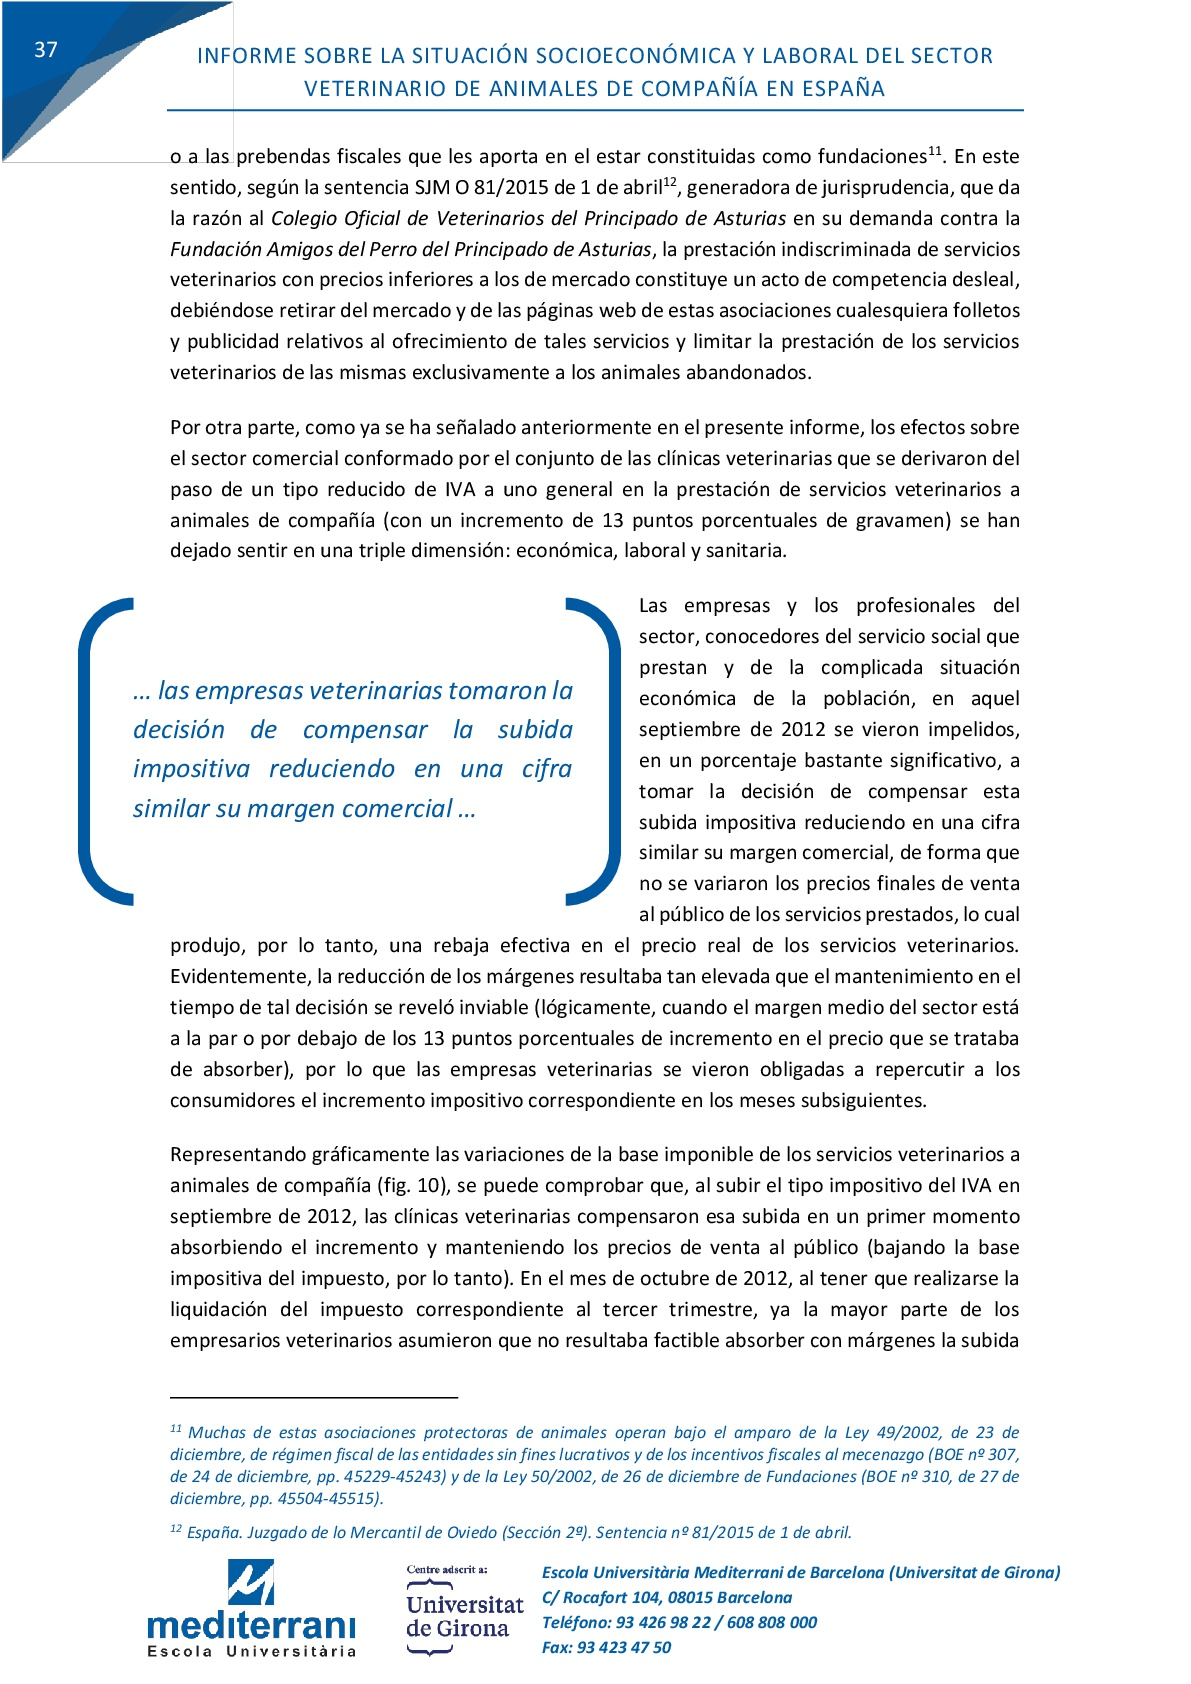 Informe-Veterinario-2017-+-informe-legal-2015-(3)-042